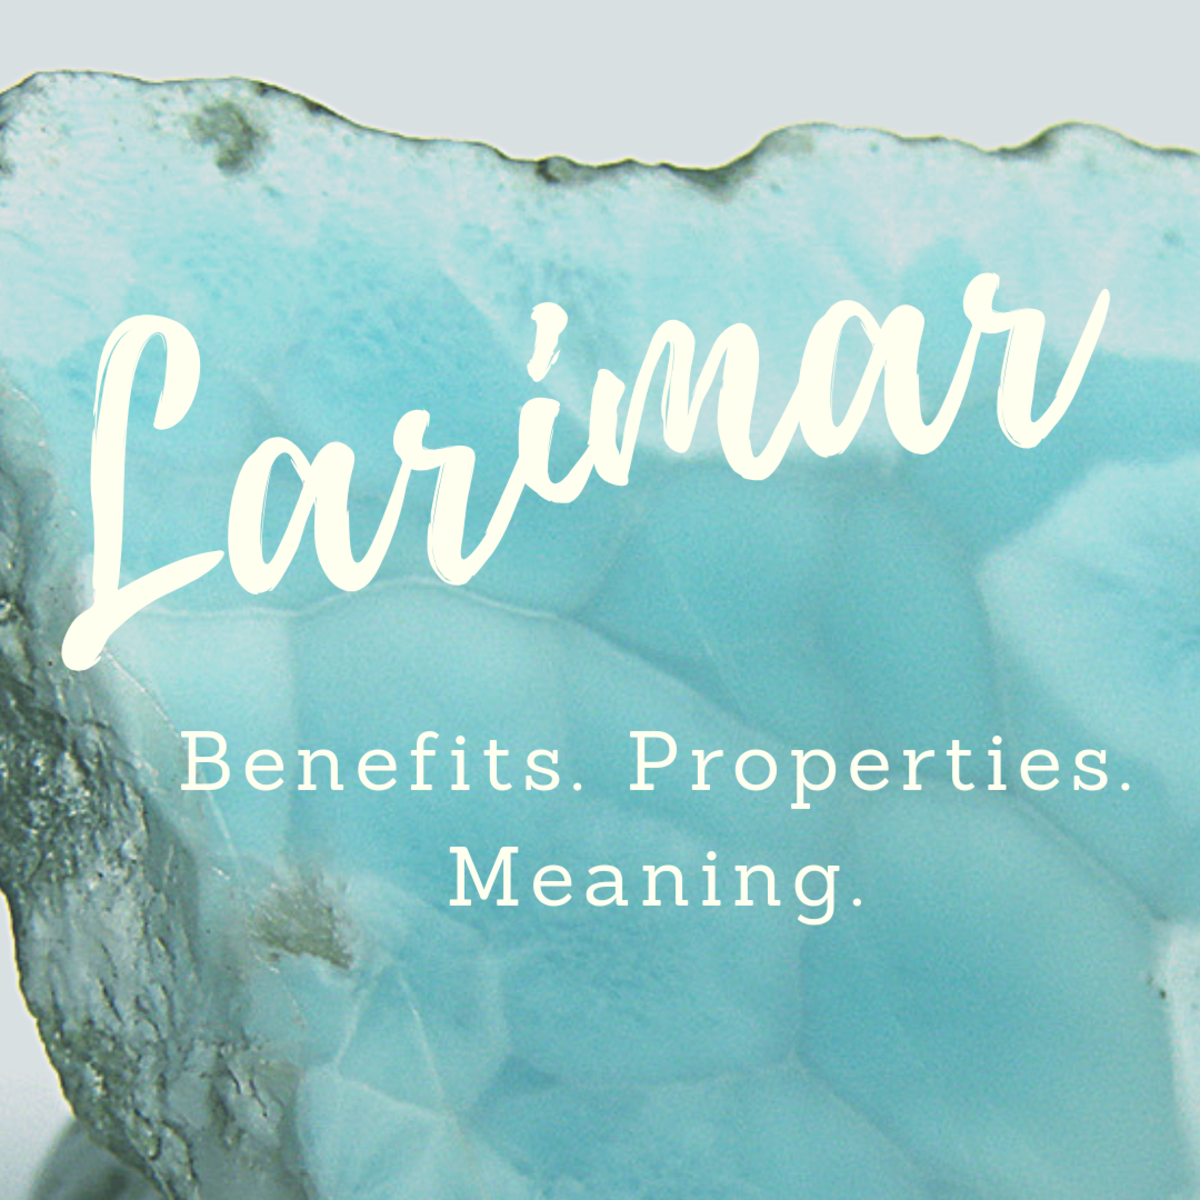 Crystal Healing: Larimar Stone Benefits, Properties, and Meaning